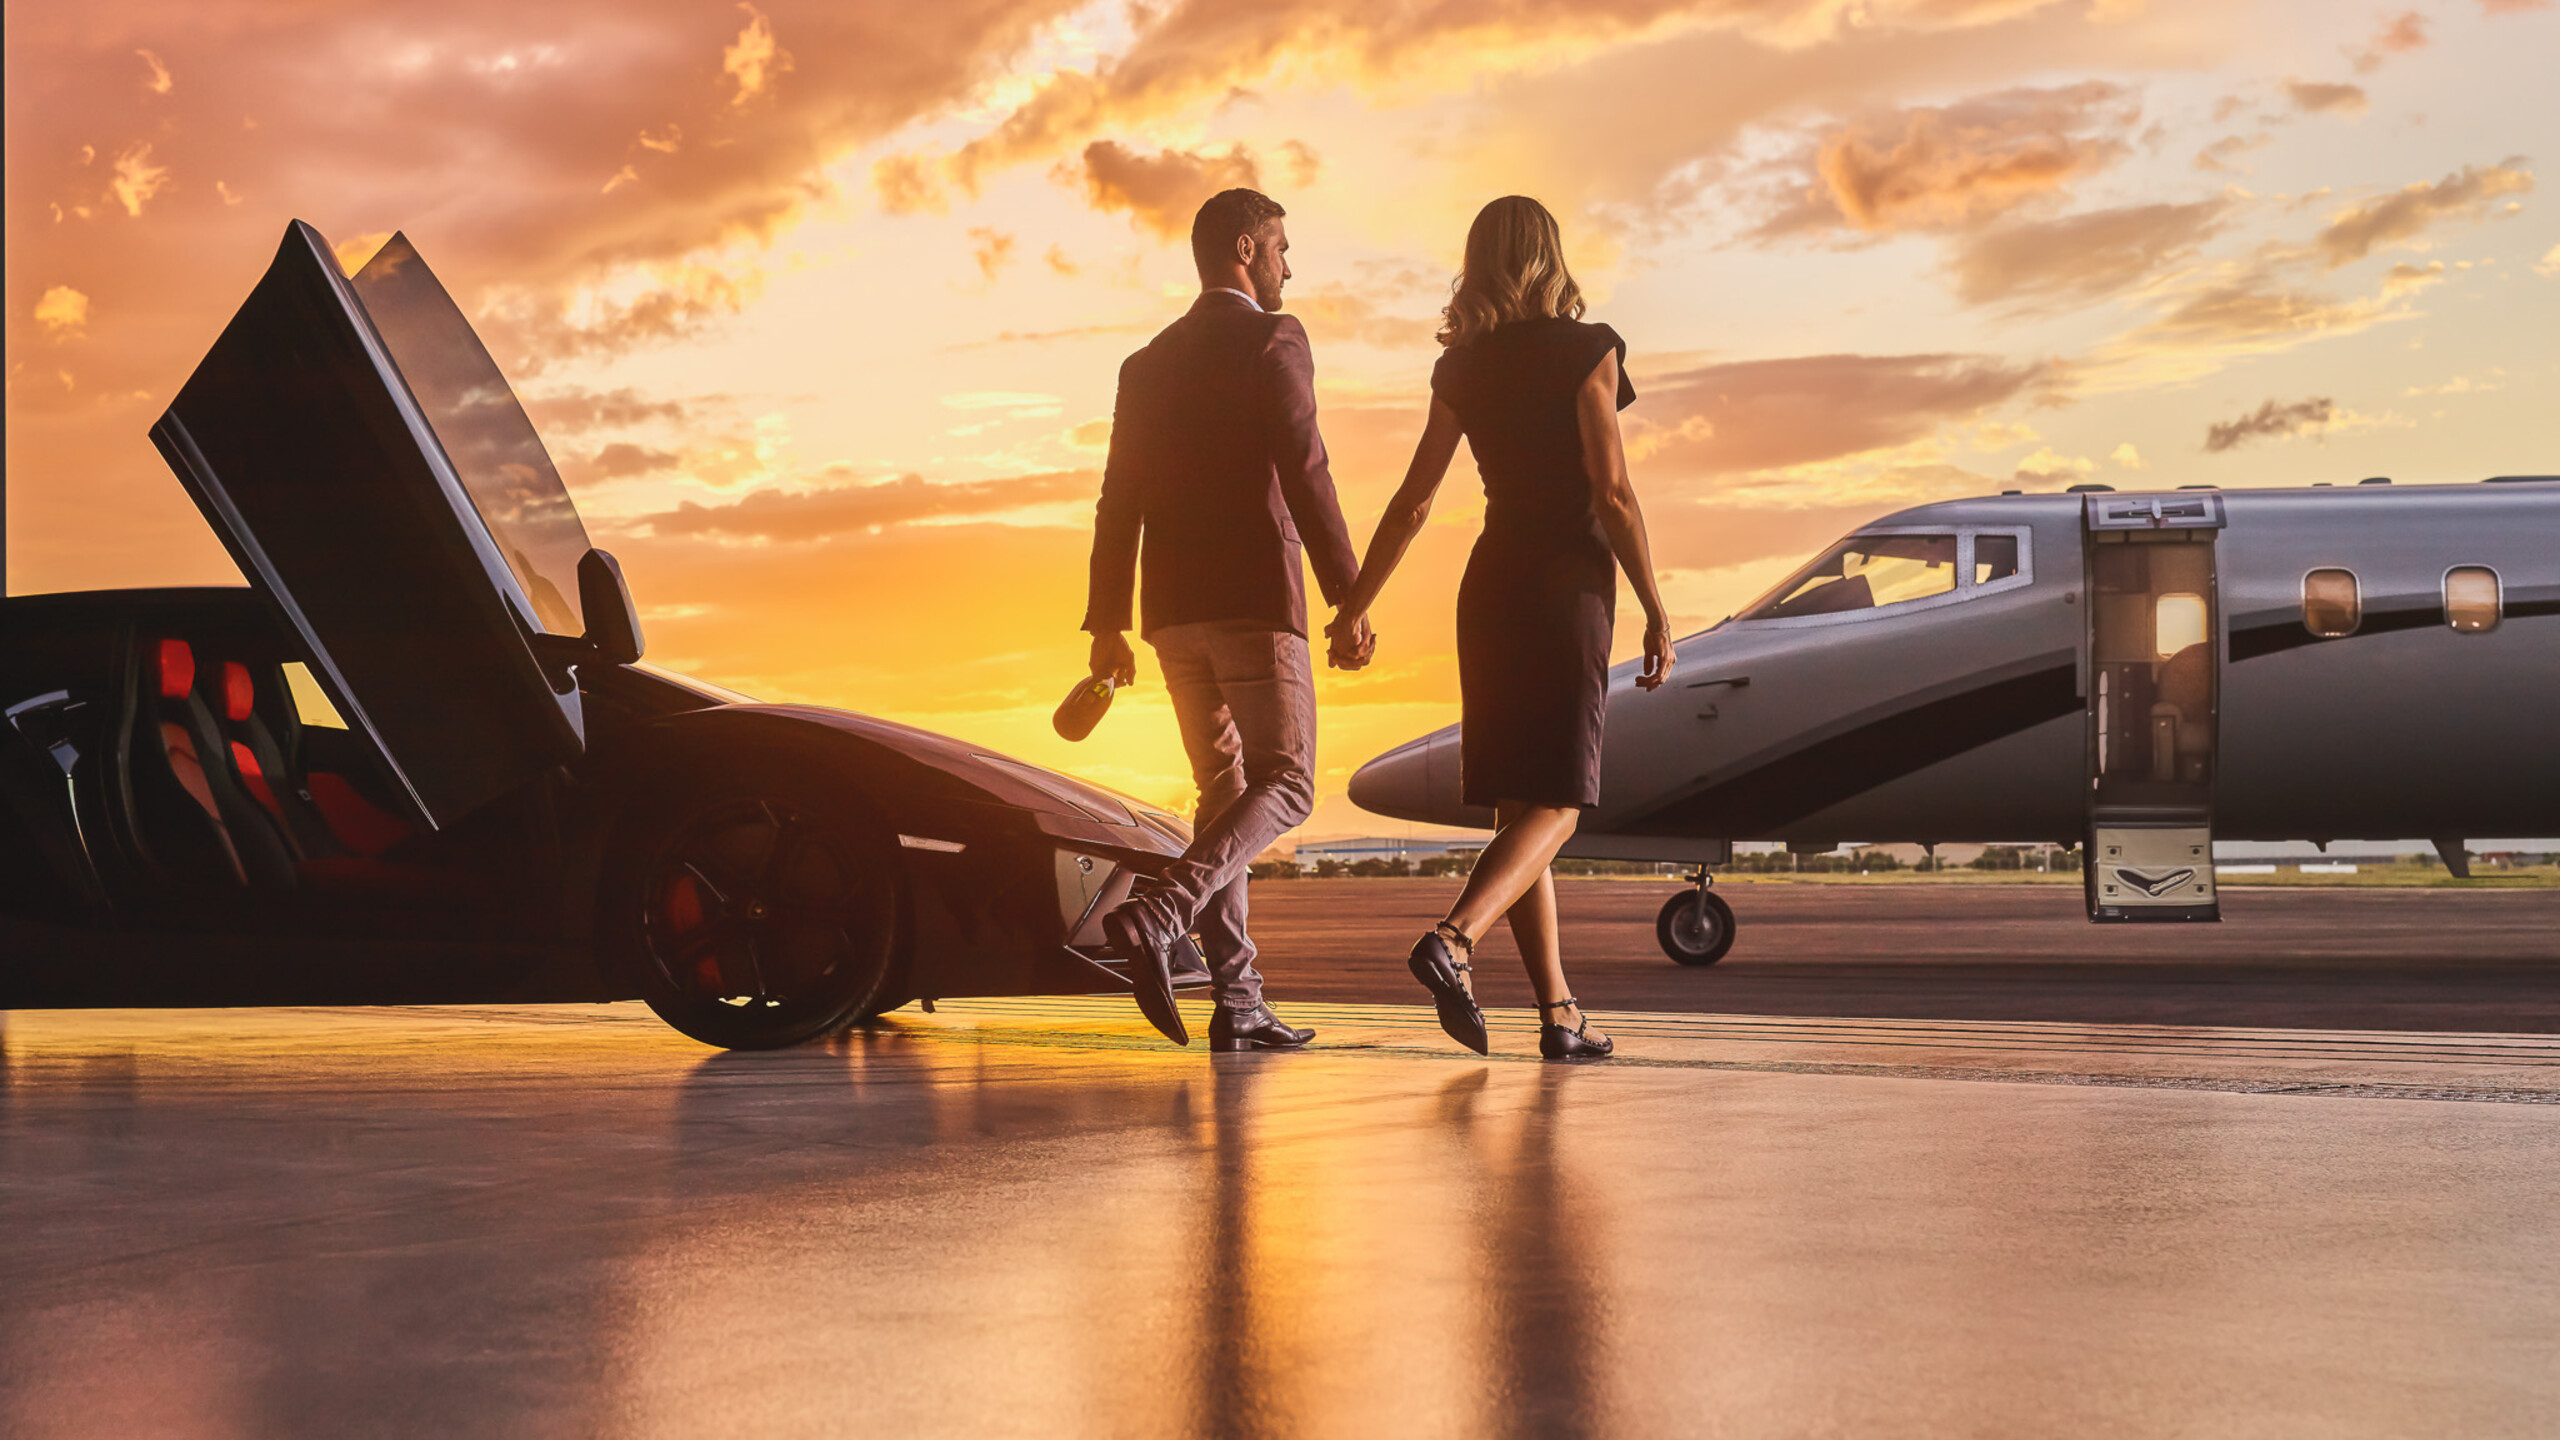 THE-PERFECT-PRIVATE-JET-FOR-YOUR-NEXT-TRIP